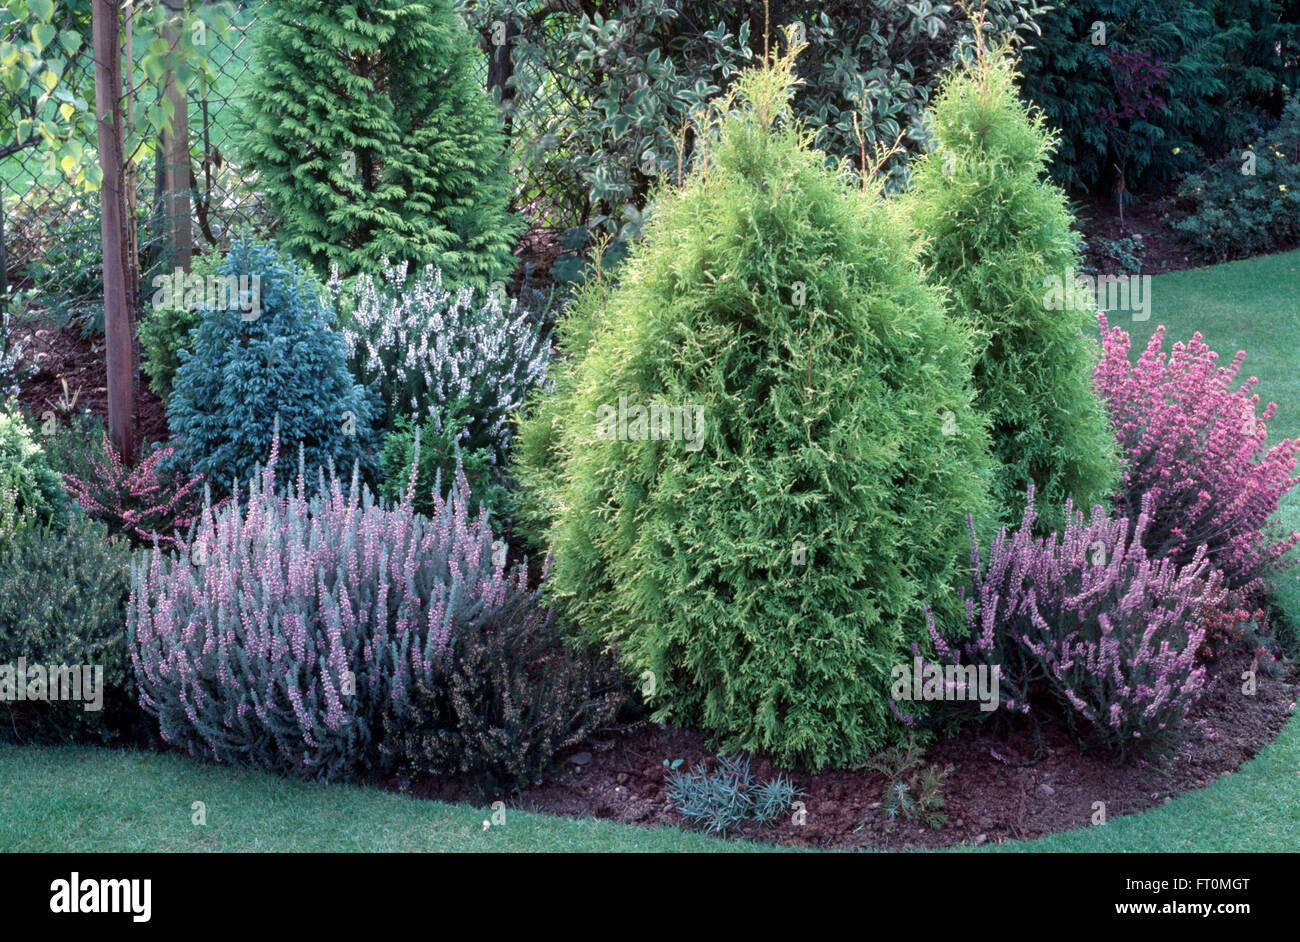 Low growing conifers and mauve heathers in a shrub border Stock Photo